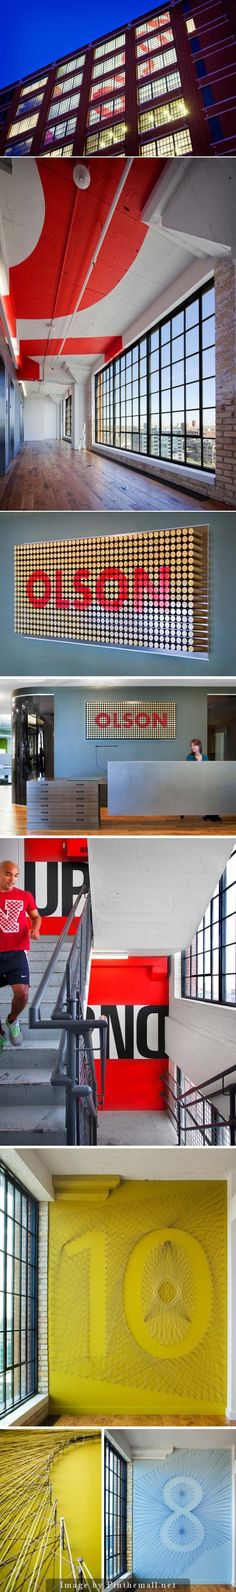 Environmental Graphics and signage | Gensler